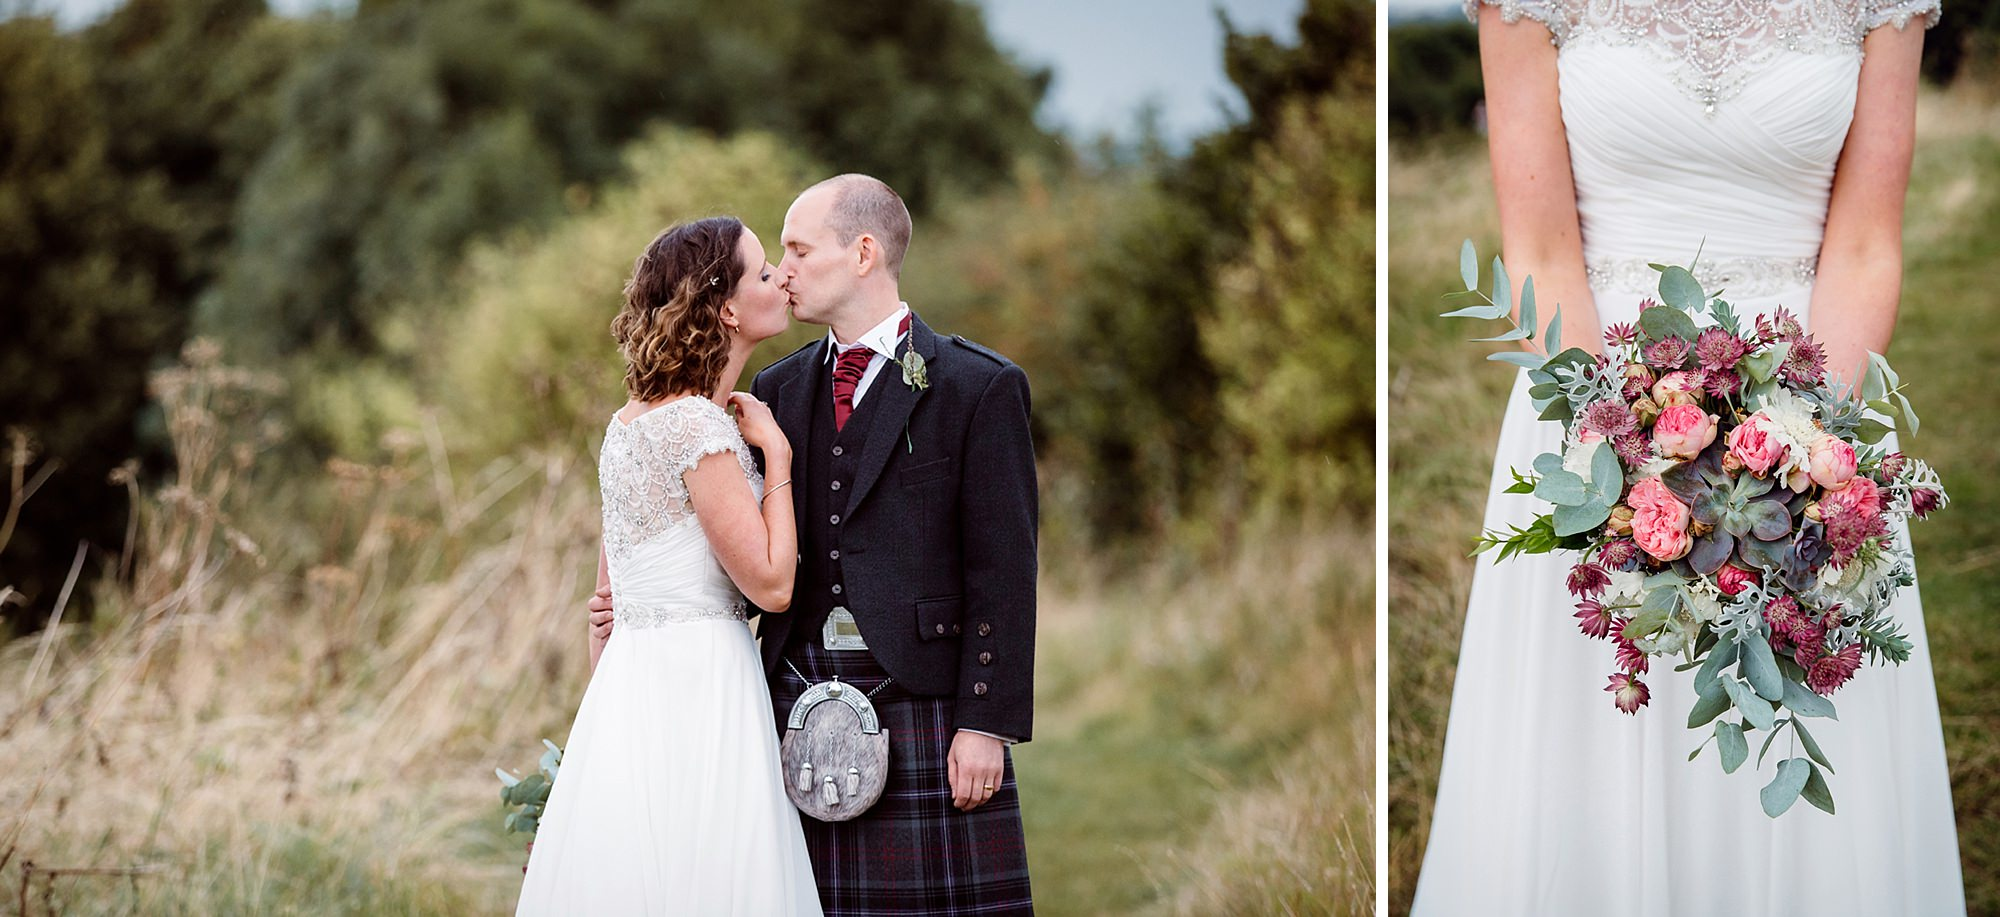 outdoor humanist wedding photography bride and groom kiss